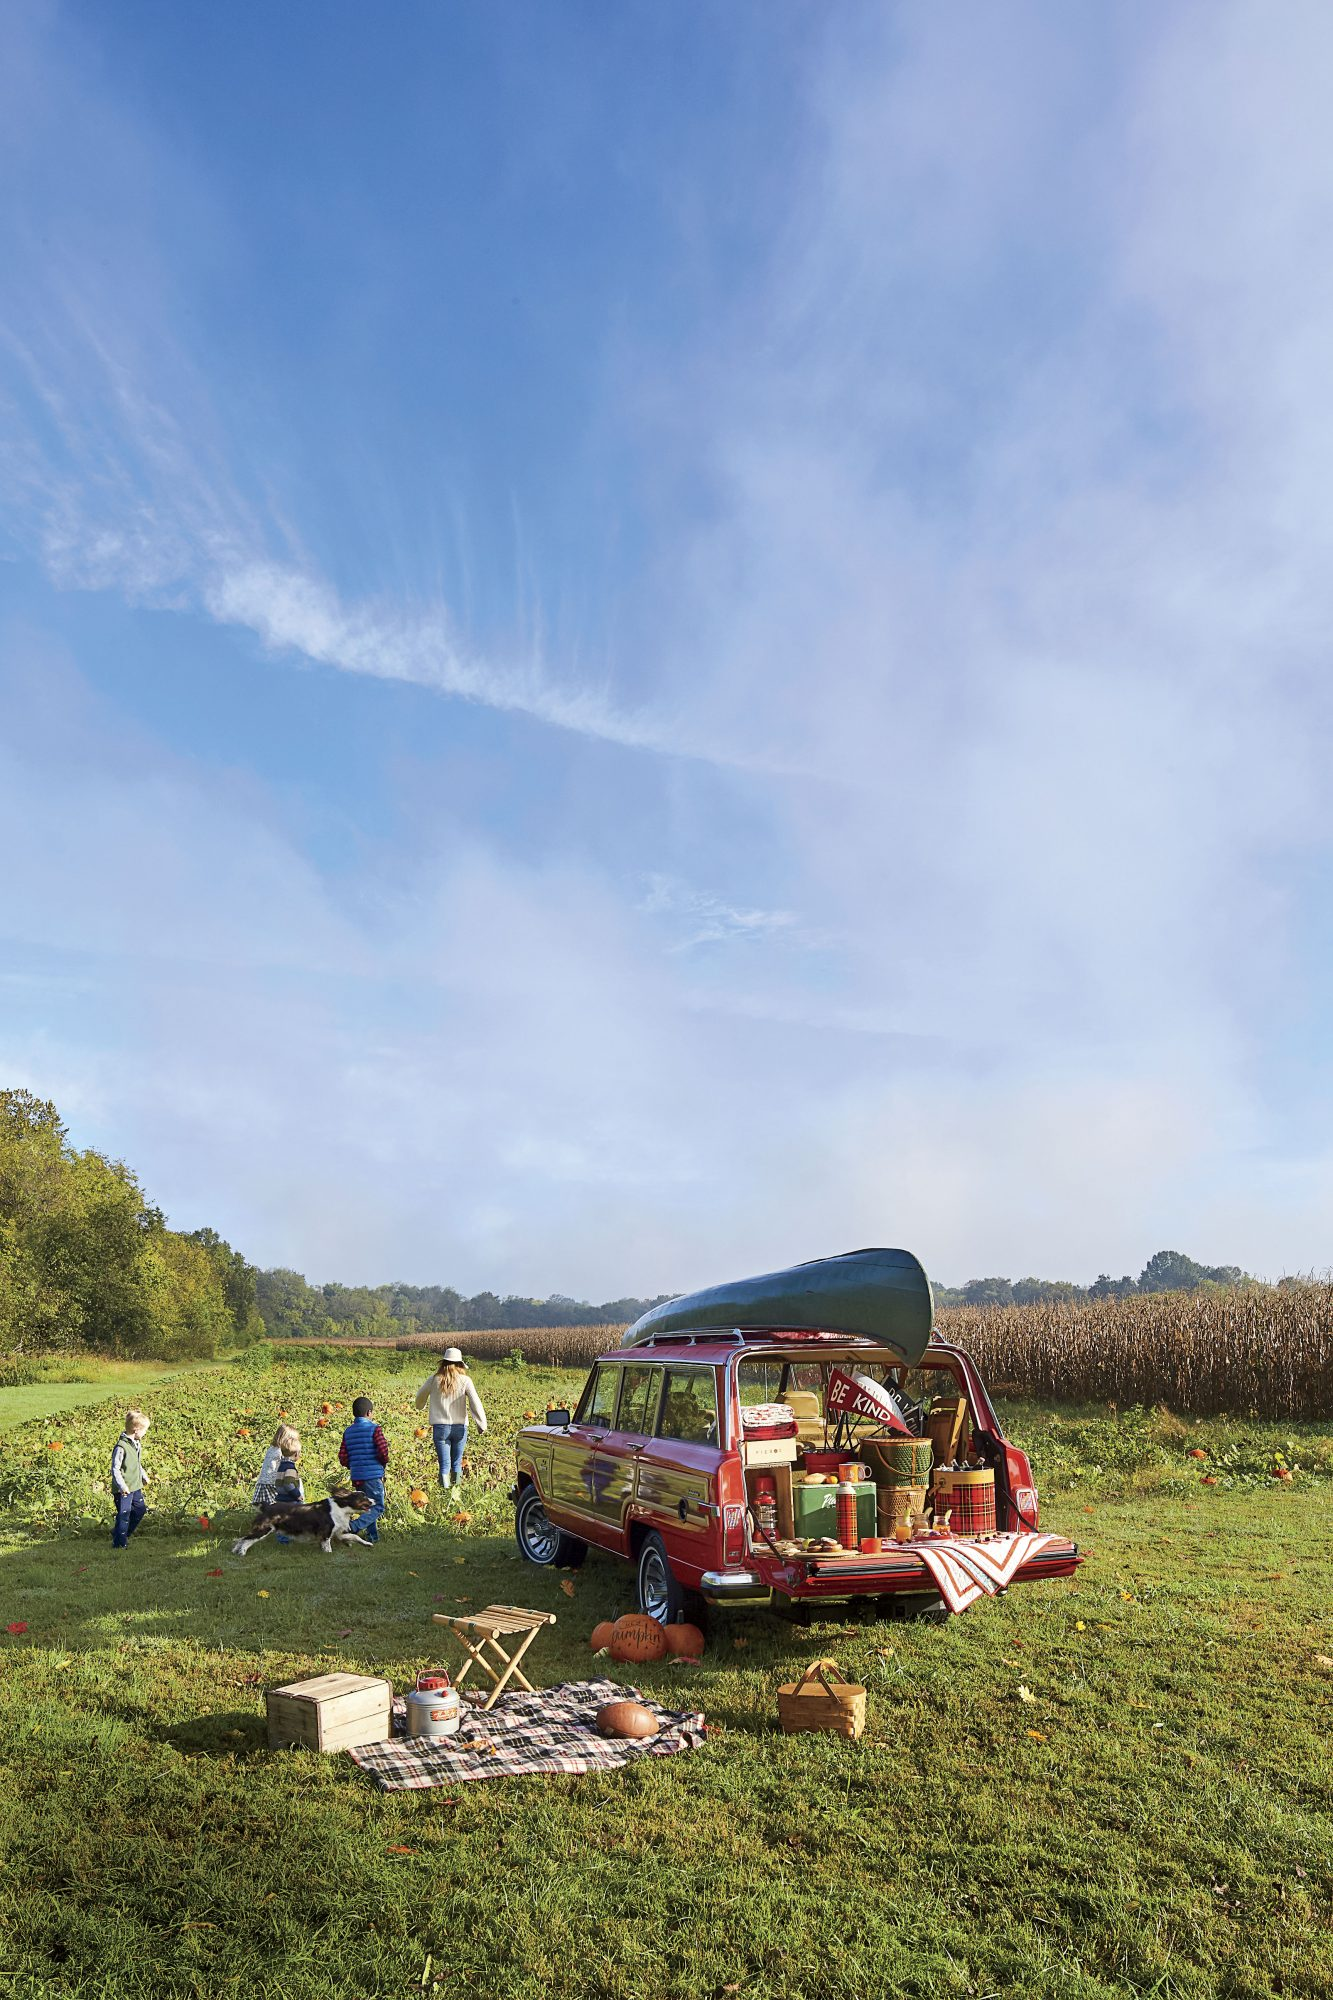 Katie Jacobs Fall Tailgate at Pumpkin Patch with Kids and Dog Running into Patch